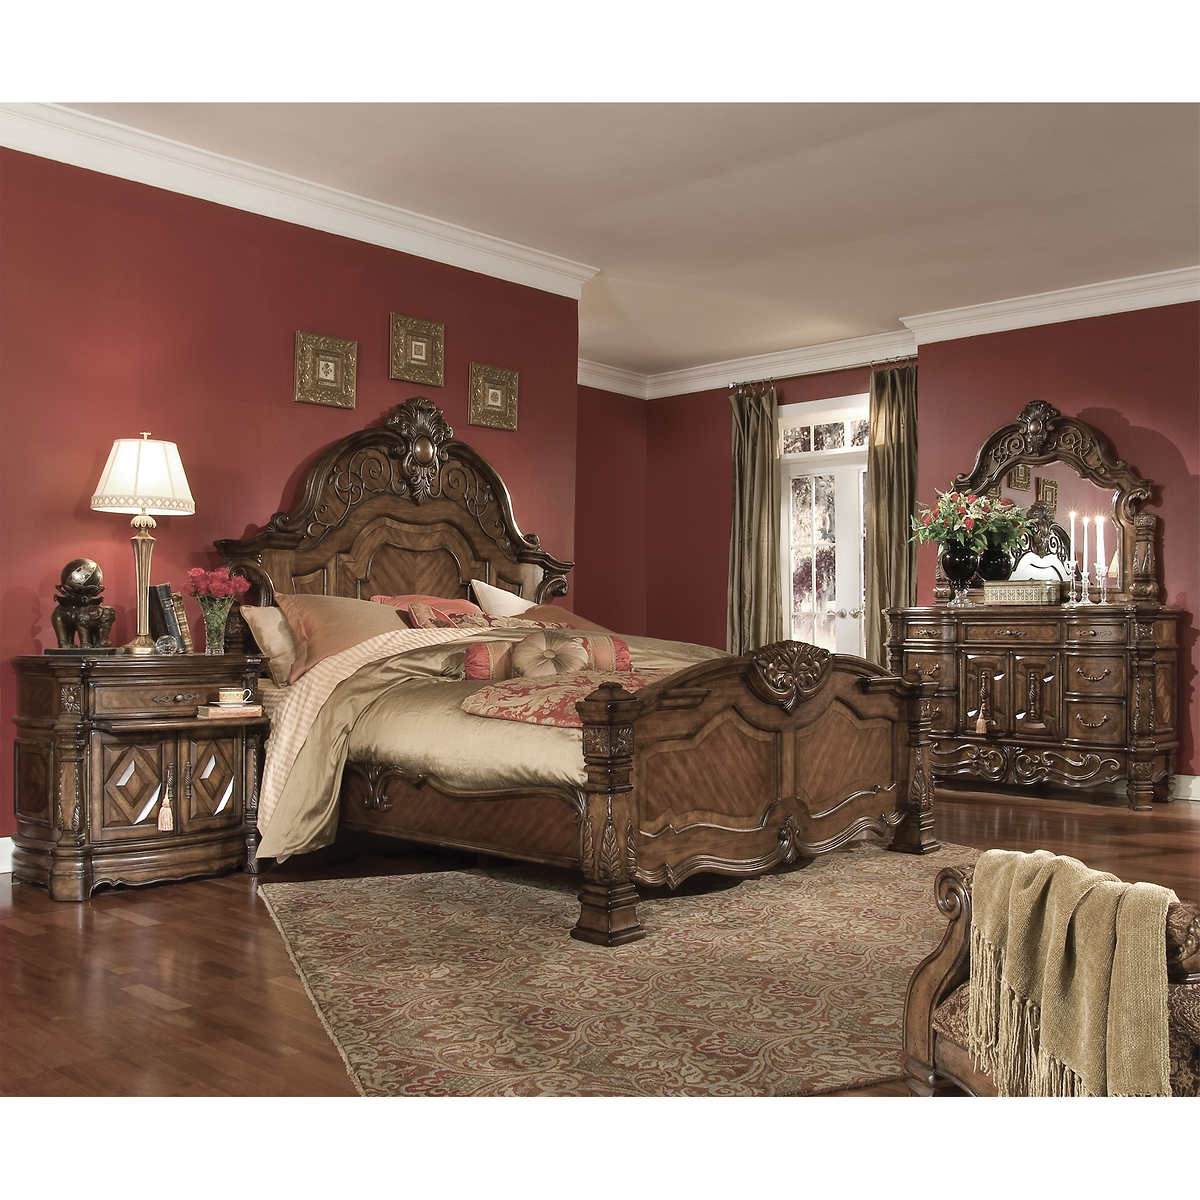 Ellington 5-piece Cal King Bedroom Set